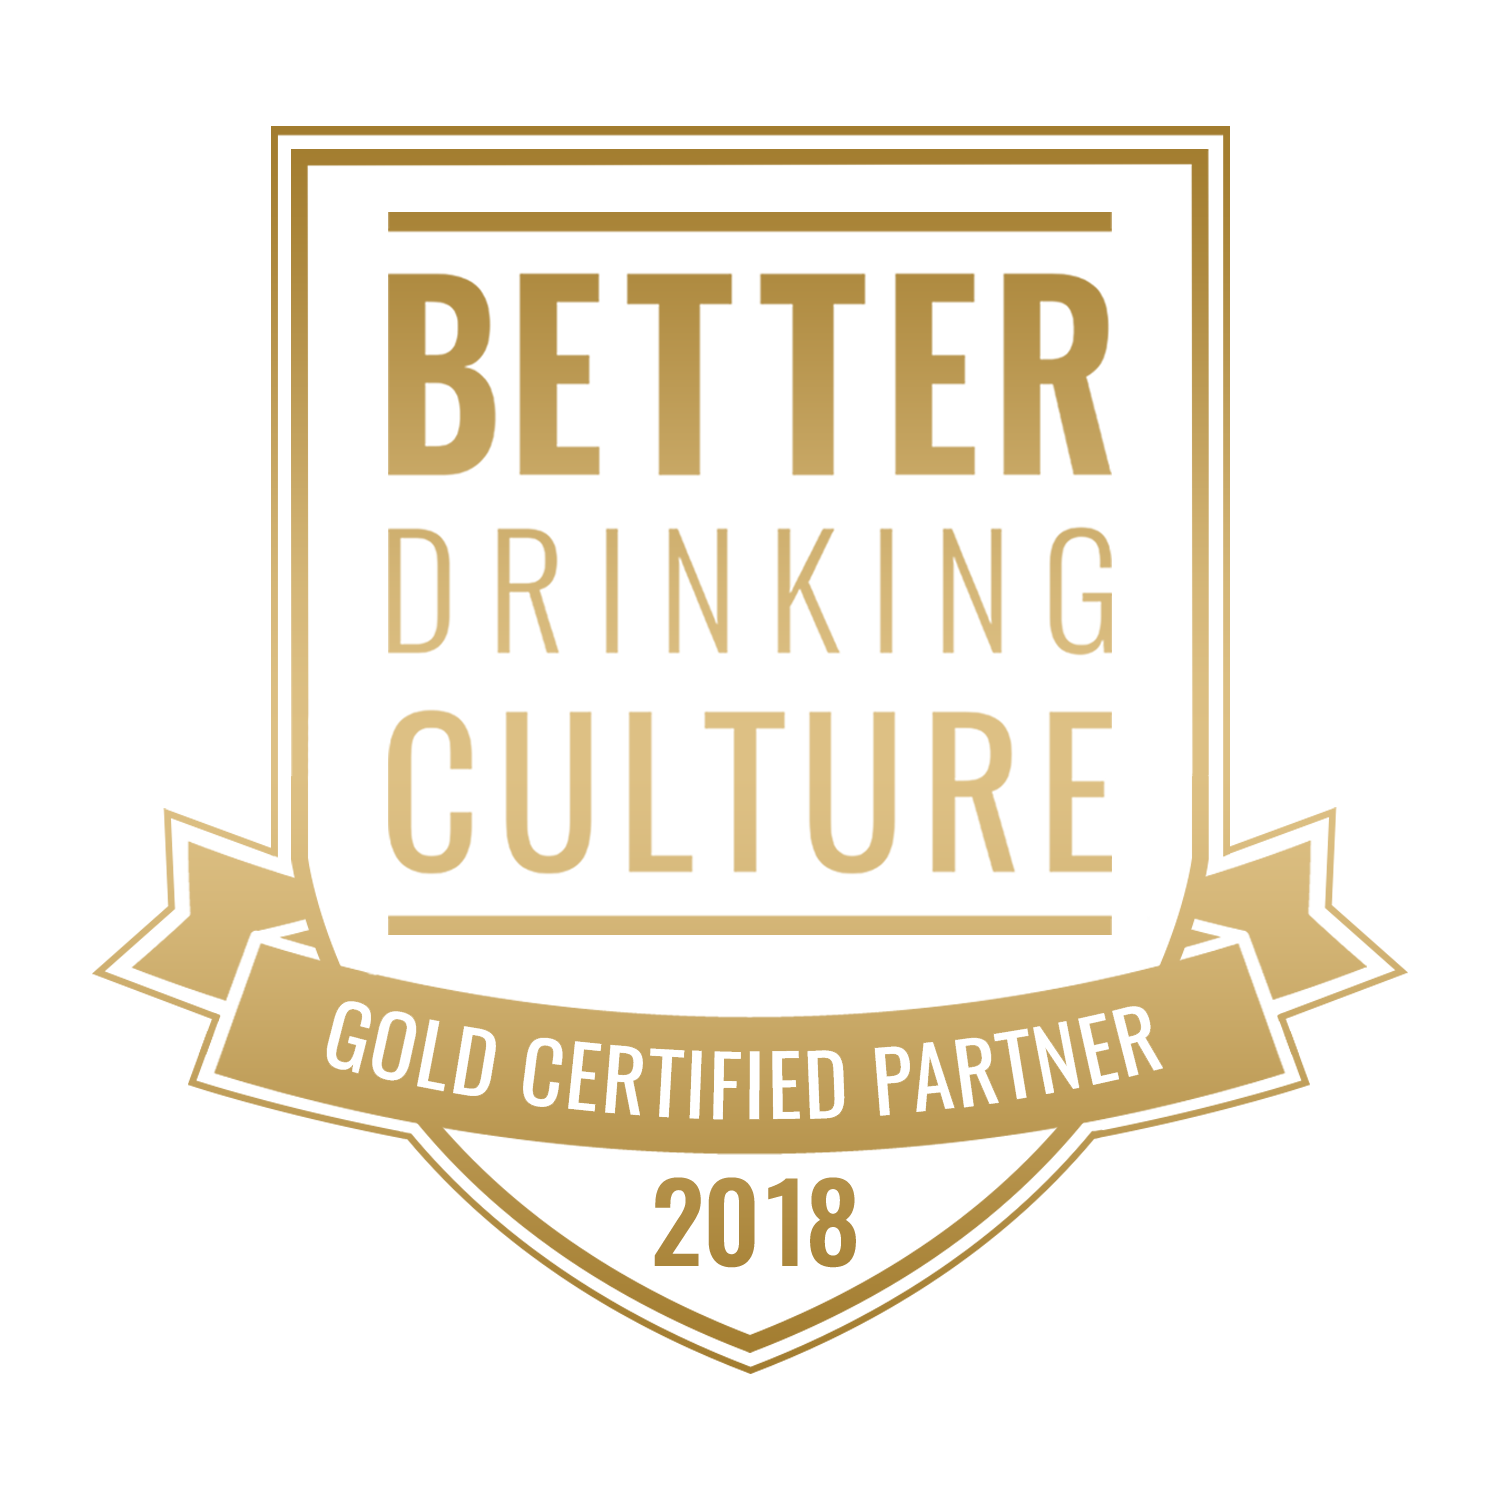 BDC_Certified Partner_Seal_2018_Gold_Gold on Transparent.png